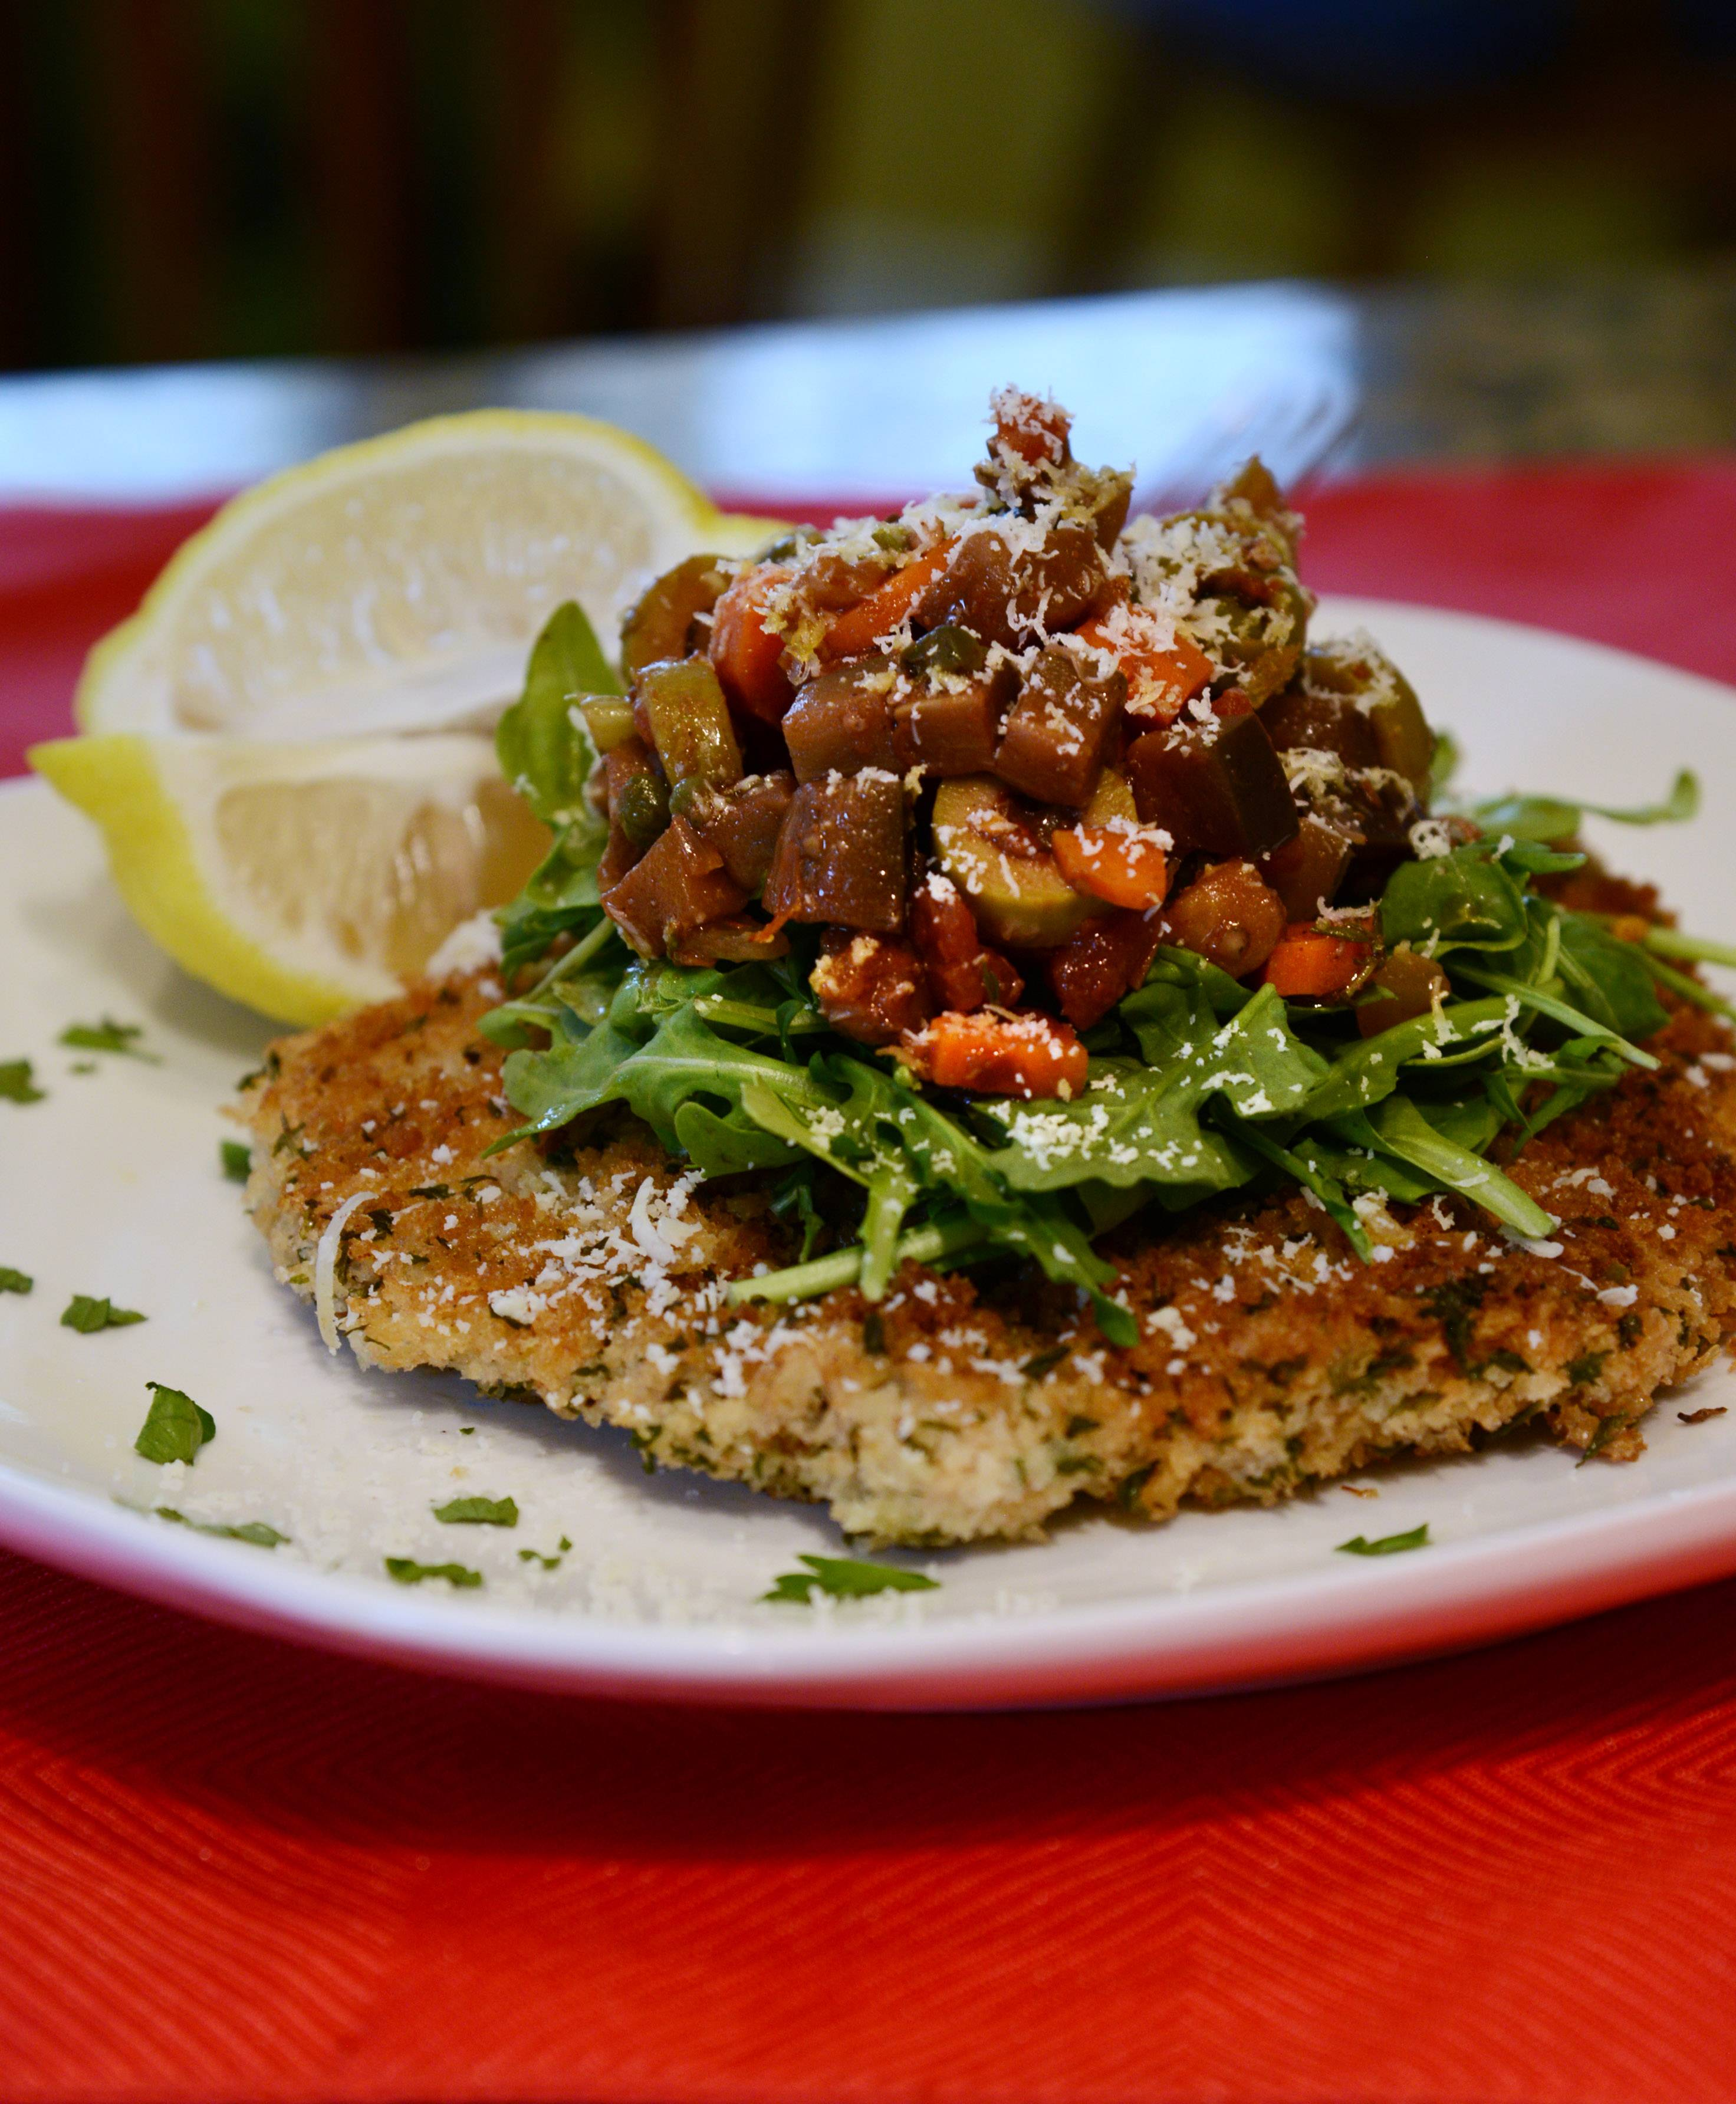 Teresa Fiocchi of Mundelein and her dish for the first challenge in the Cook of the Week Challenge. Fiocchi made turkey Milanese topped with eggplant cocoa caponata with capers.